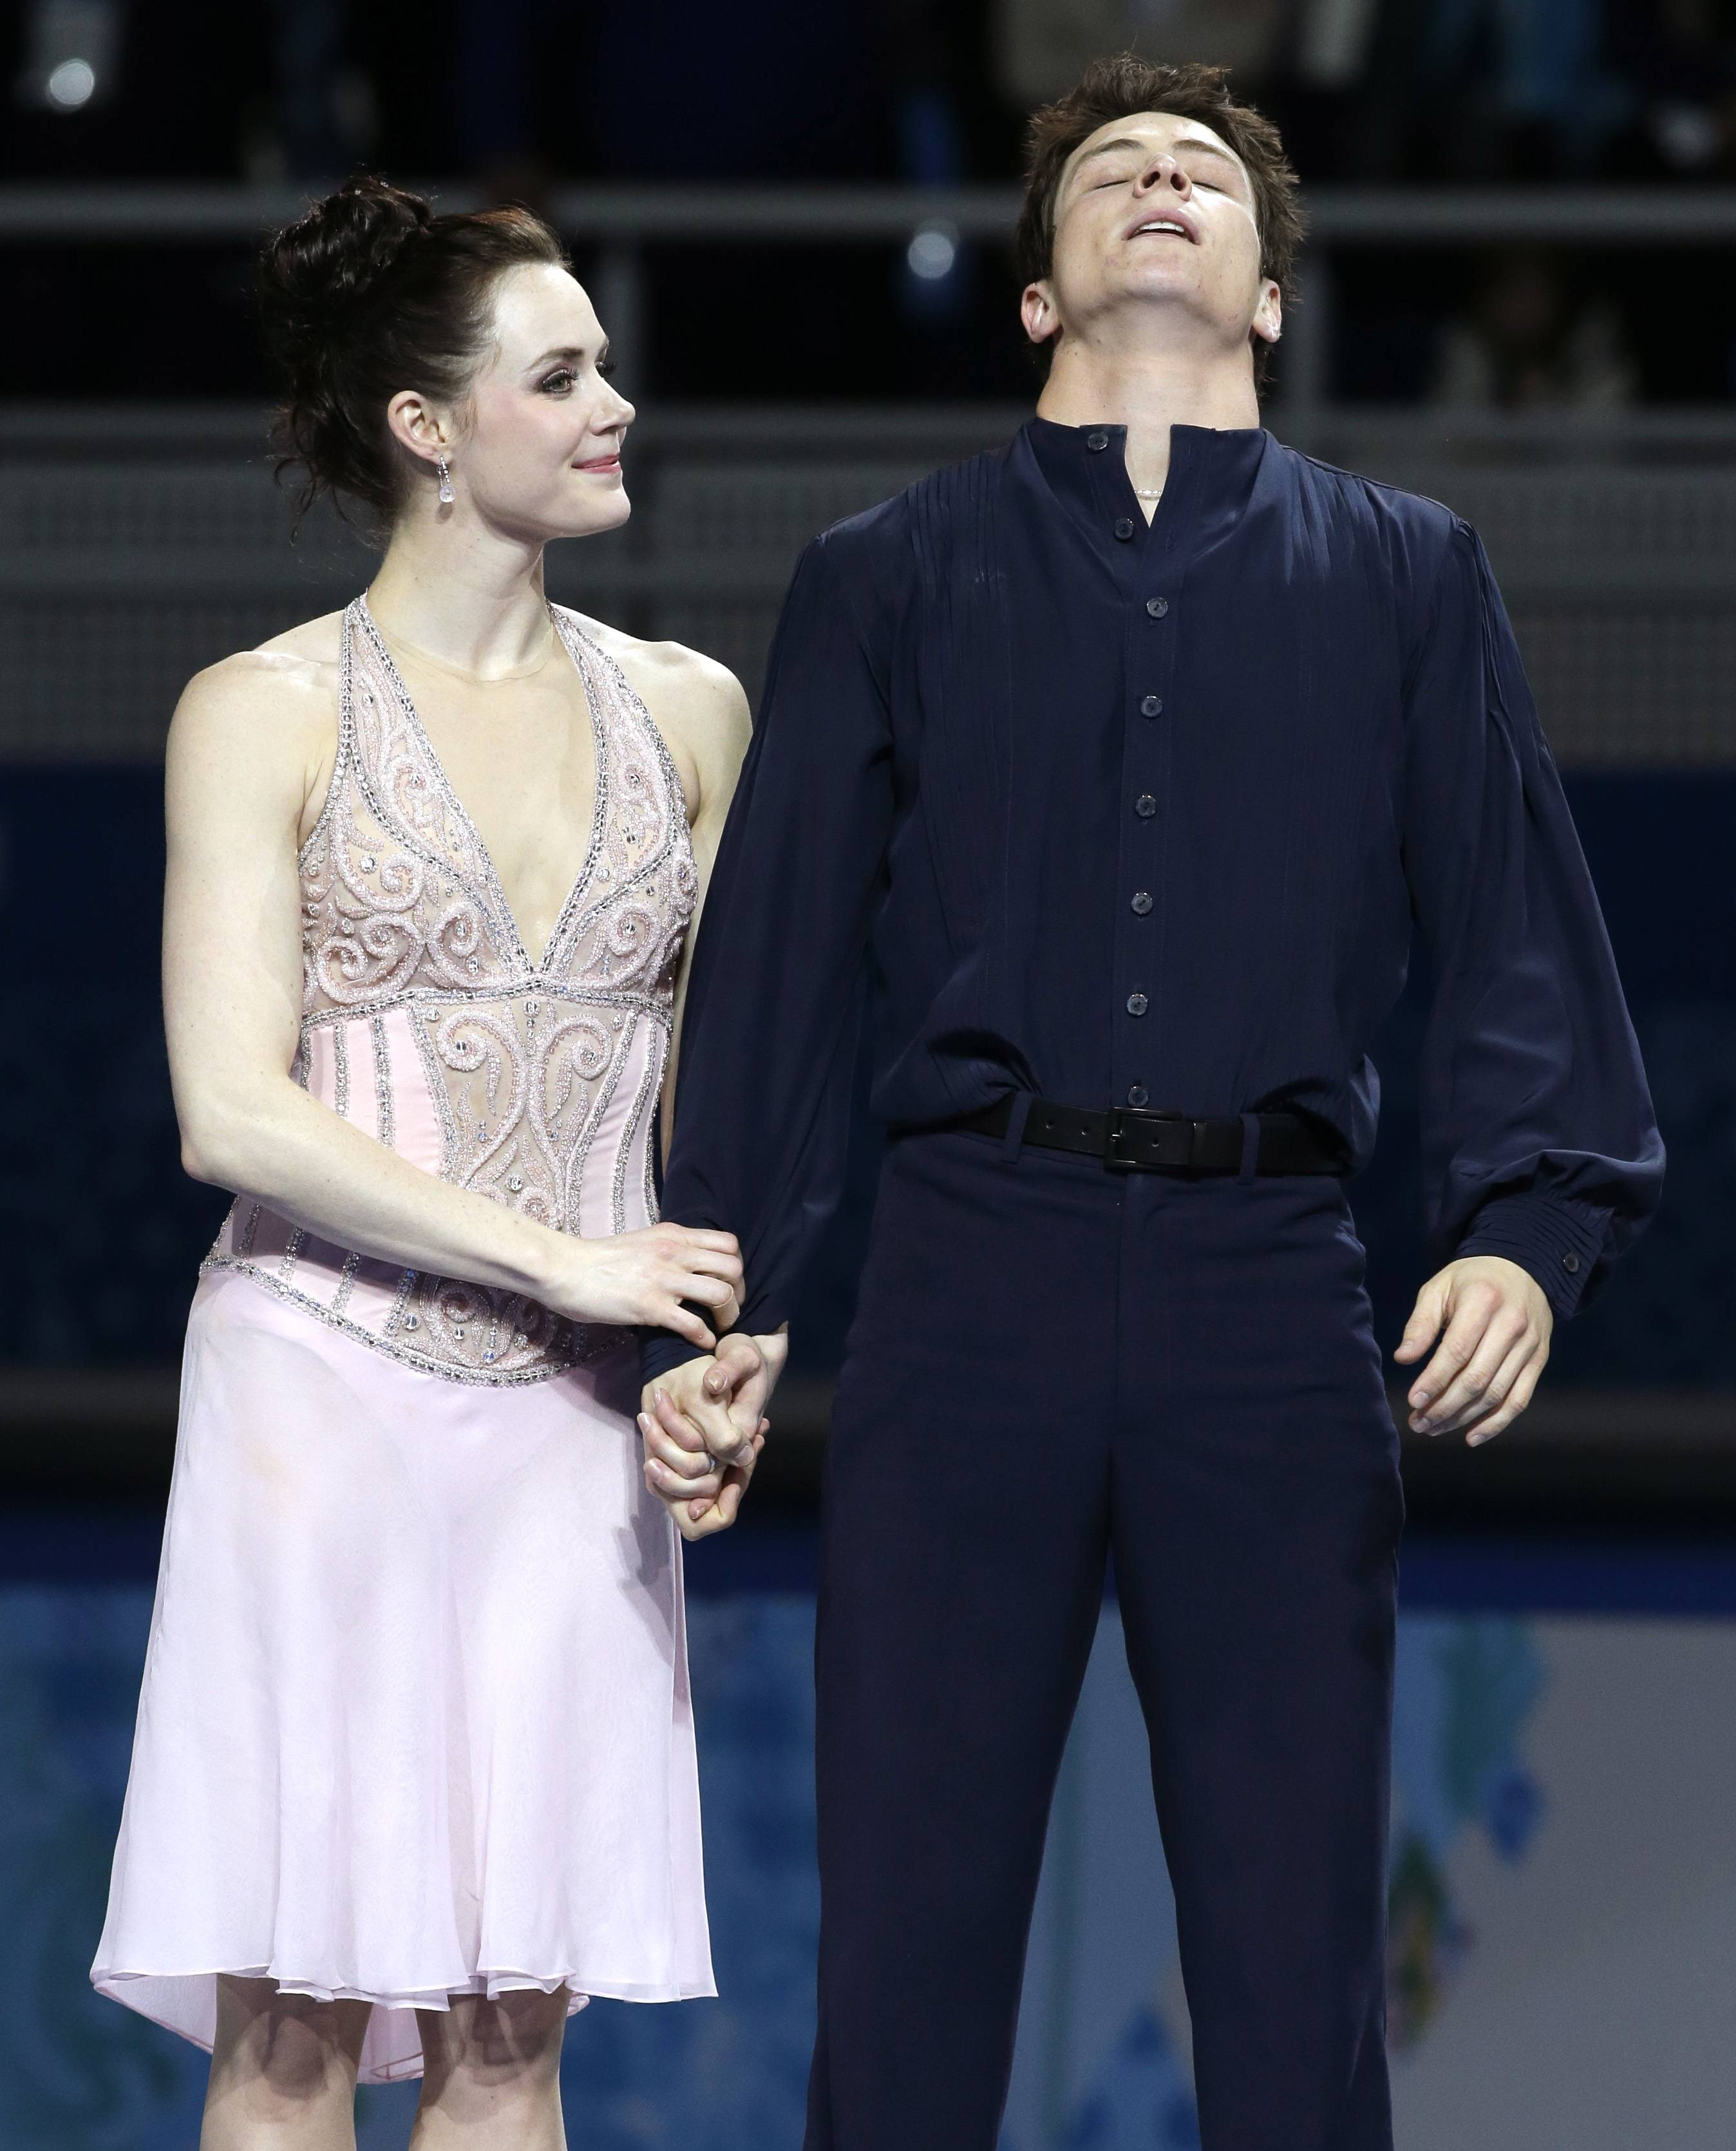 Tessa Virtue and Scott Moir of Canada react Monday after placing second in the ice dance free dance figure skating finals at the Iceberg Skating Palace during the 2014 Winter Olympics in Sochi, Russia.